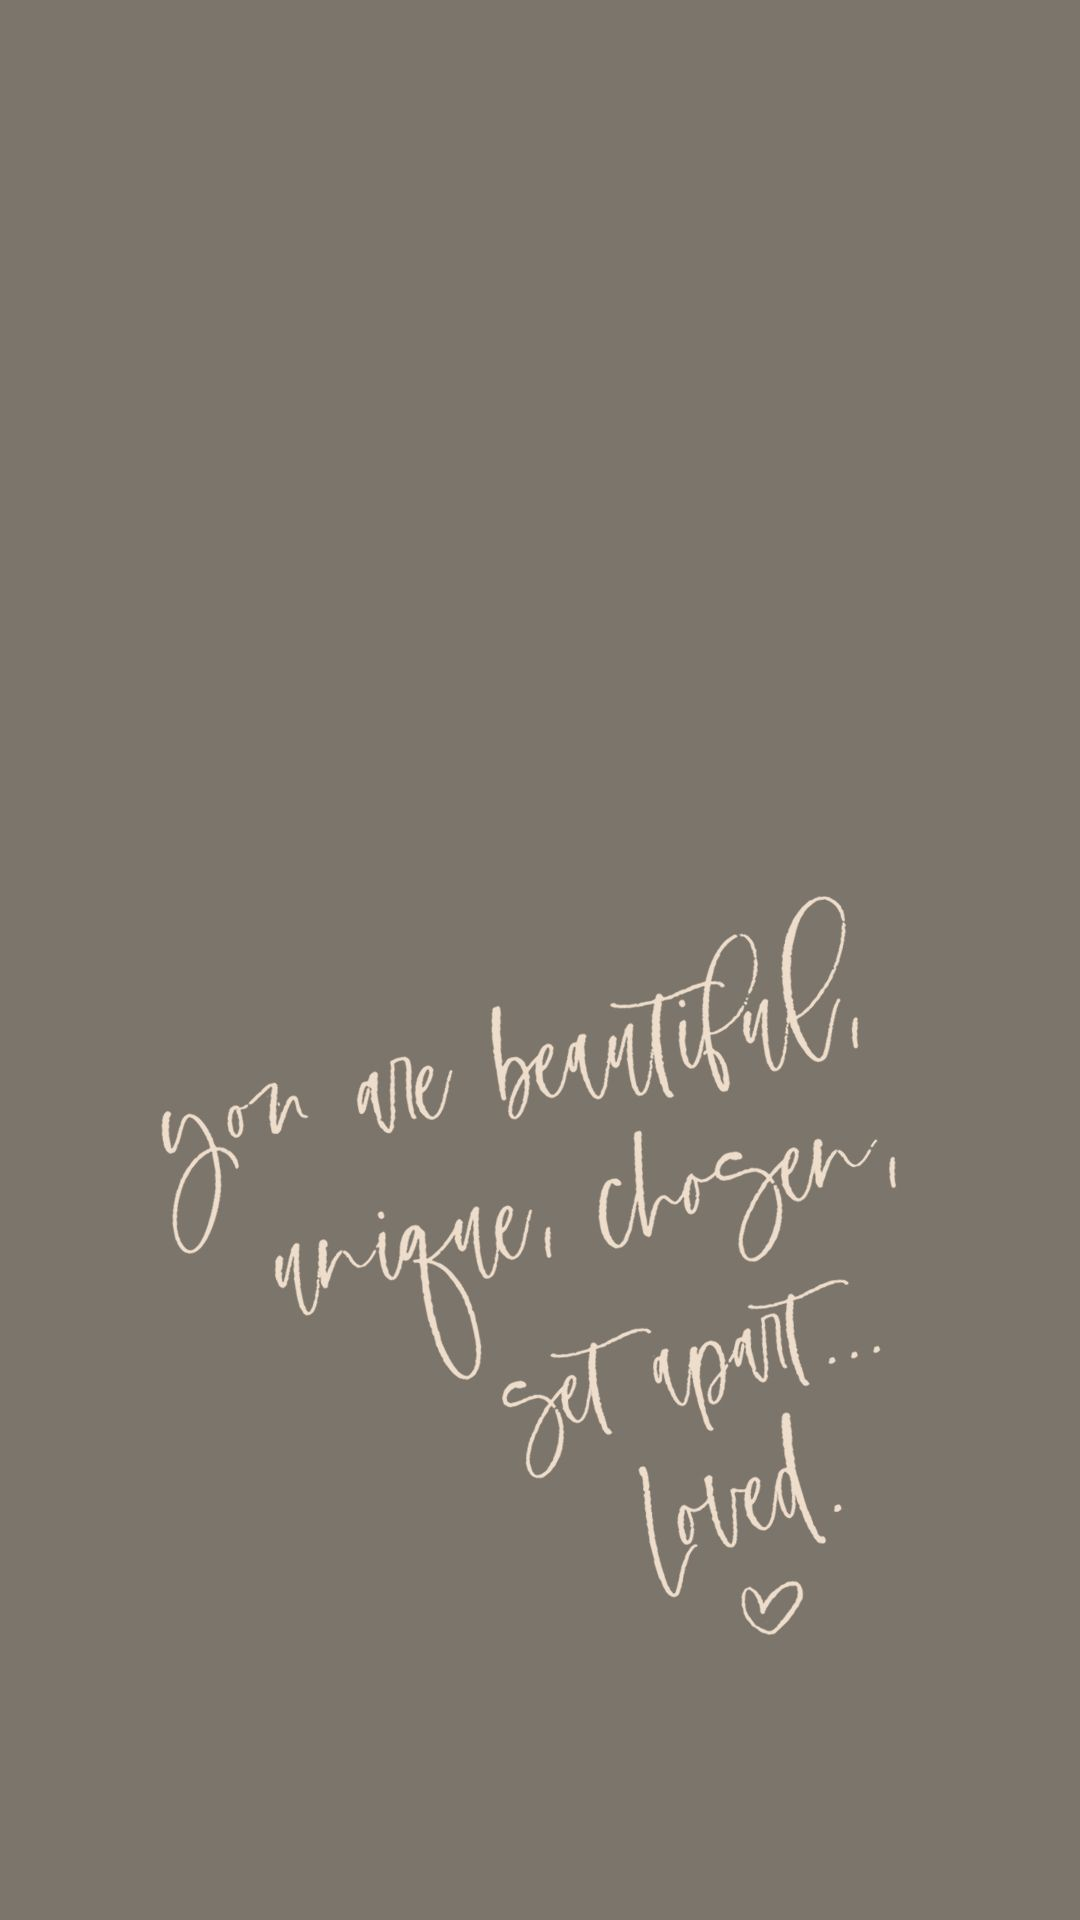 iPhone Wallpaper Background. Handwritten. Inspirational Quote